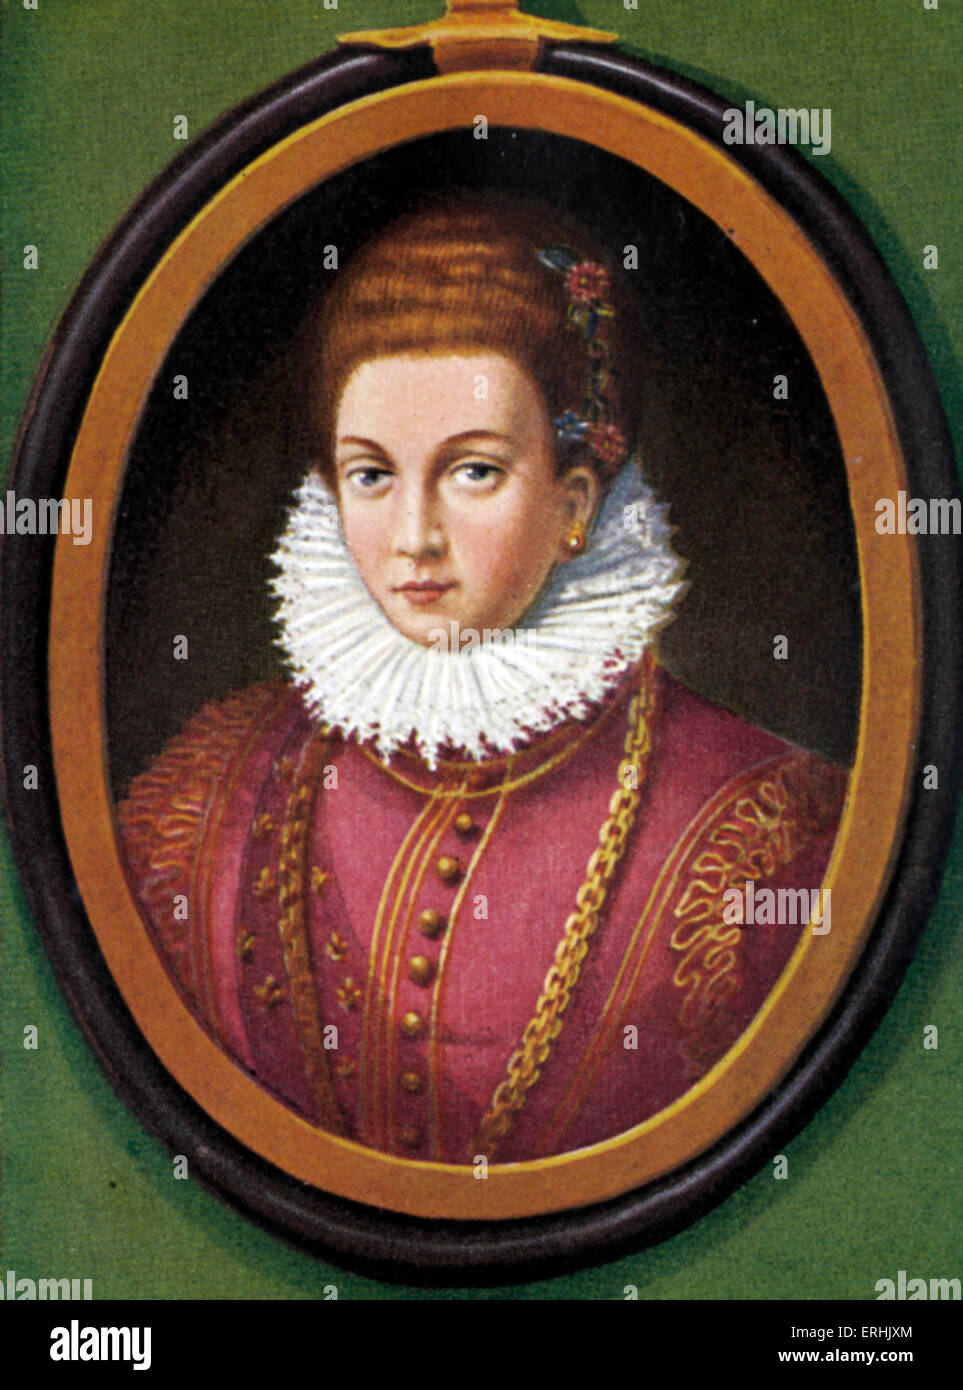 Marie de' Medici. Portrait of queen of France. The second wife of King Henry IV of France. Later she was the - Stock Image